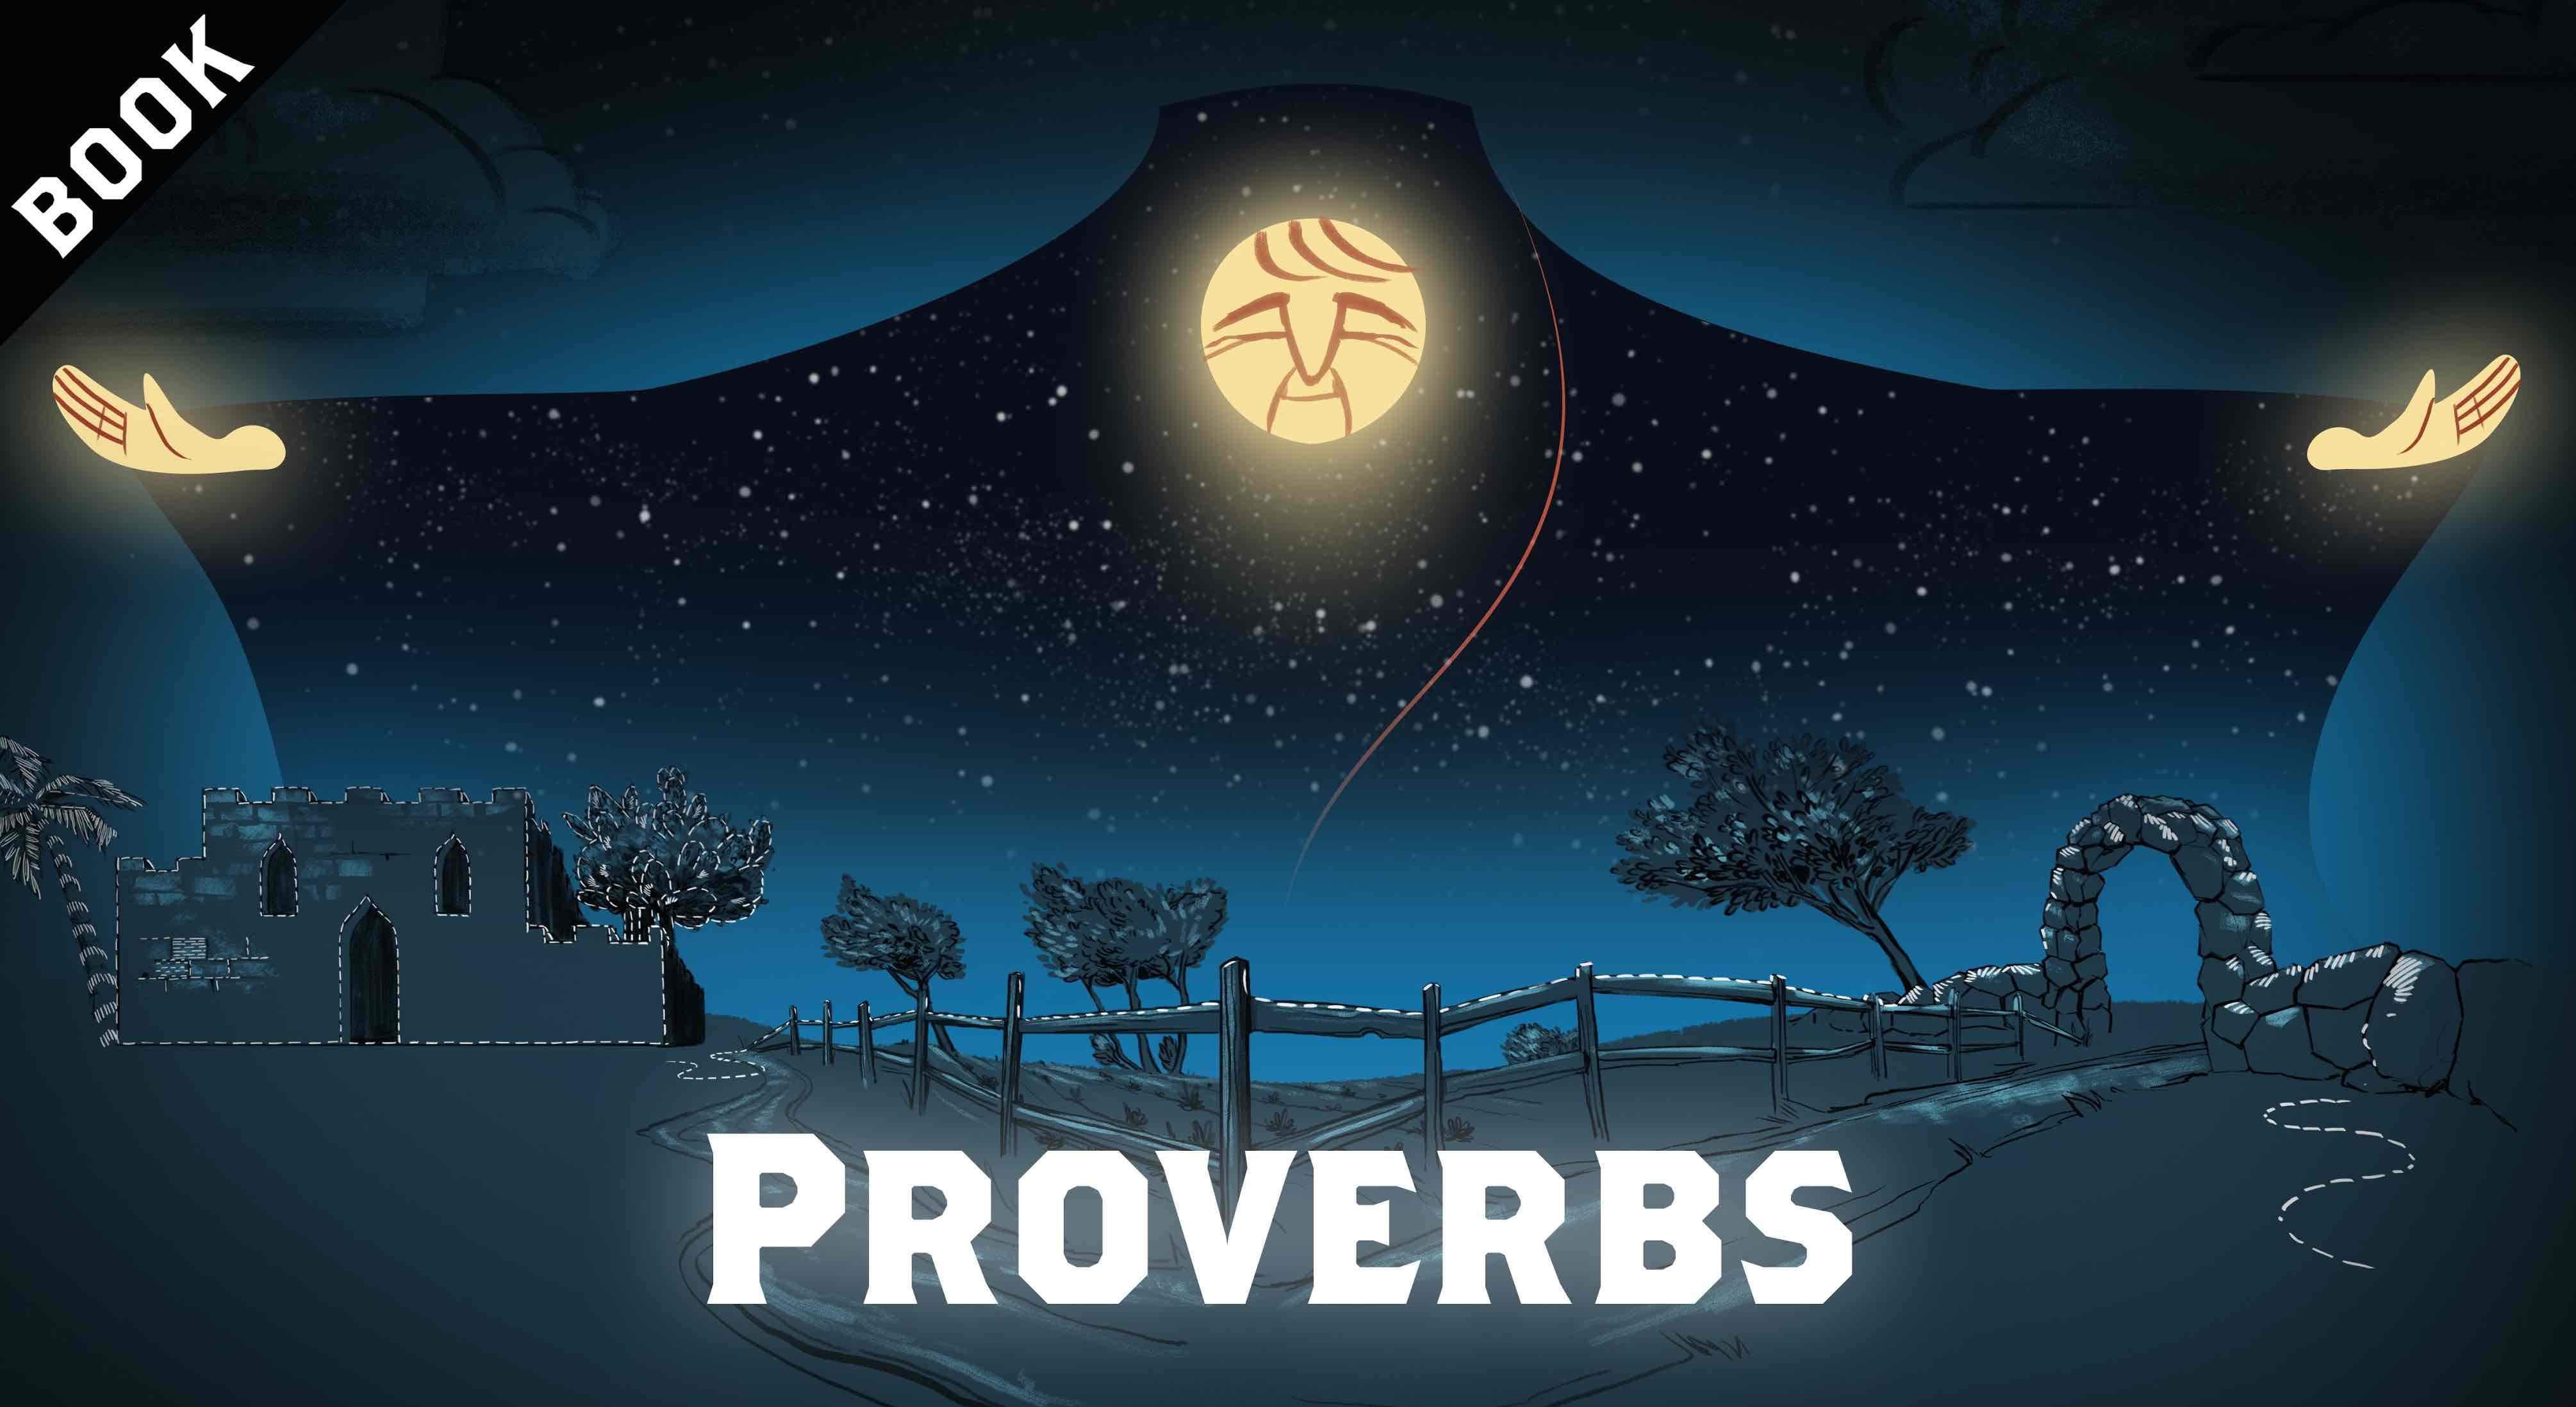 Mind Blowing Animation Of The Book Of Proverbs